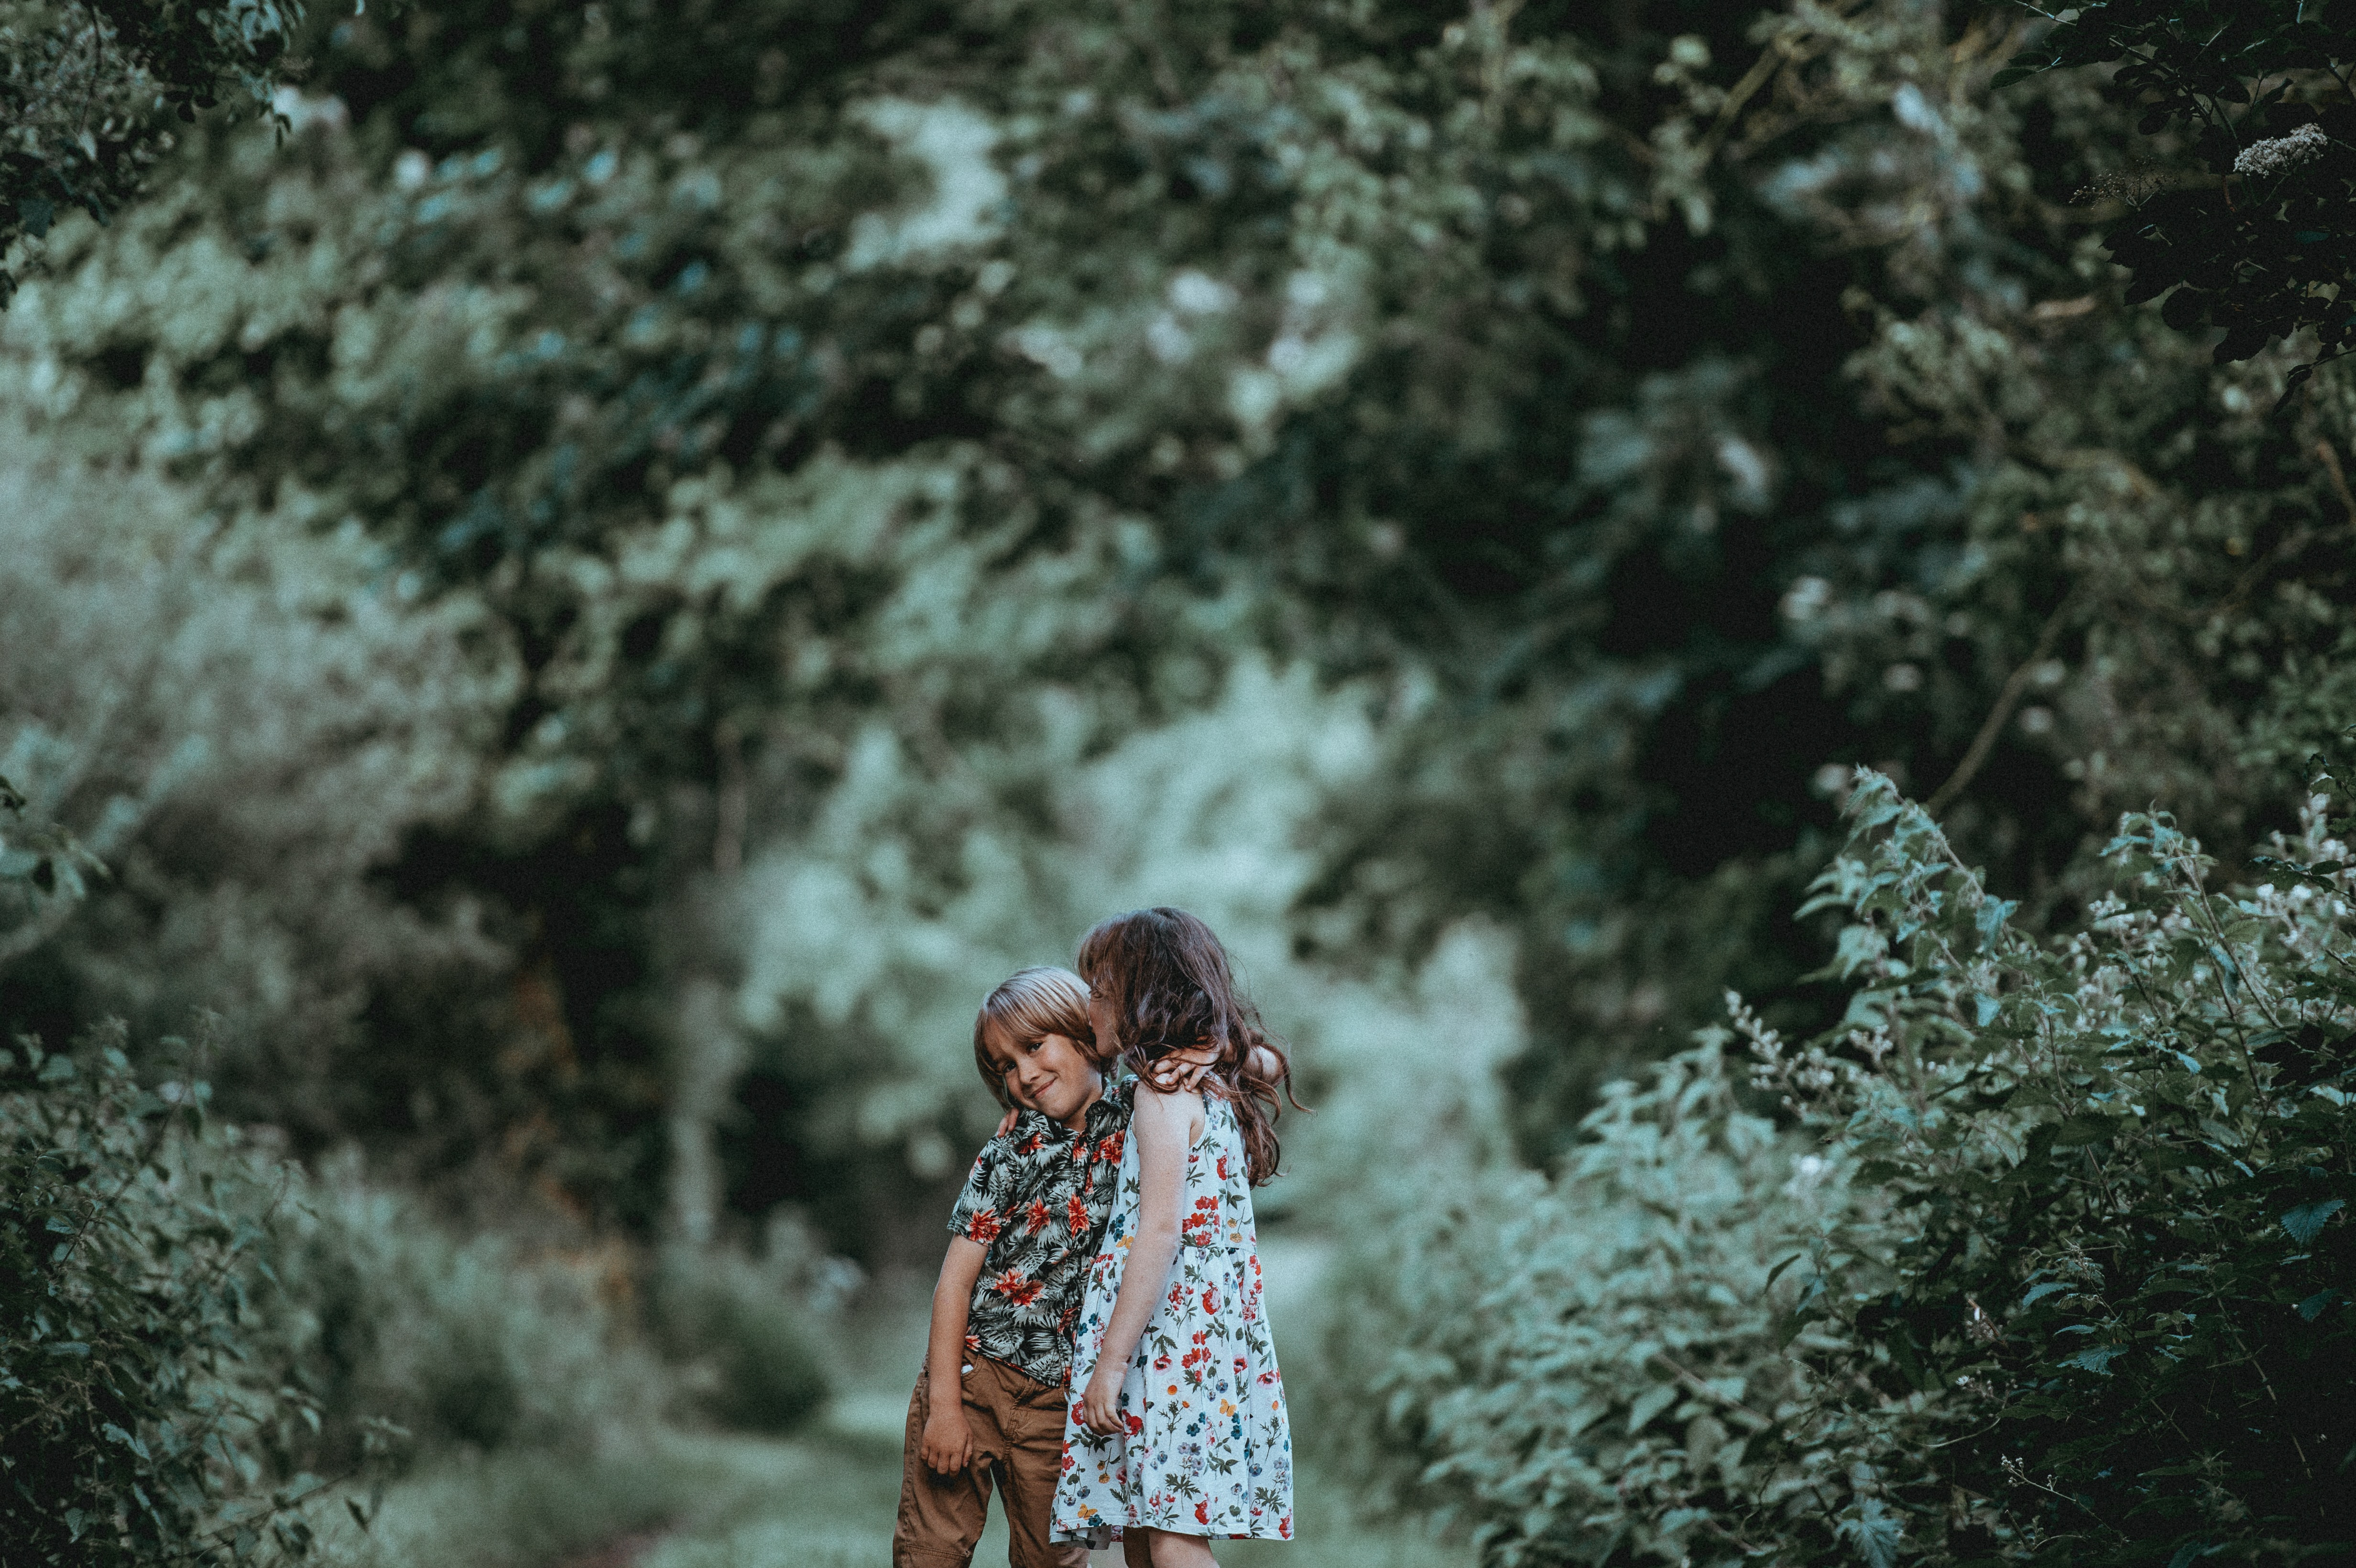 Two young children, a boy and girl, hug outdoors in a green forested area